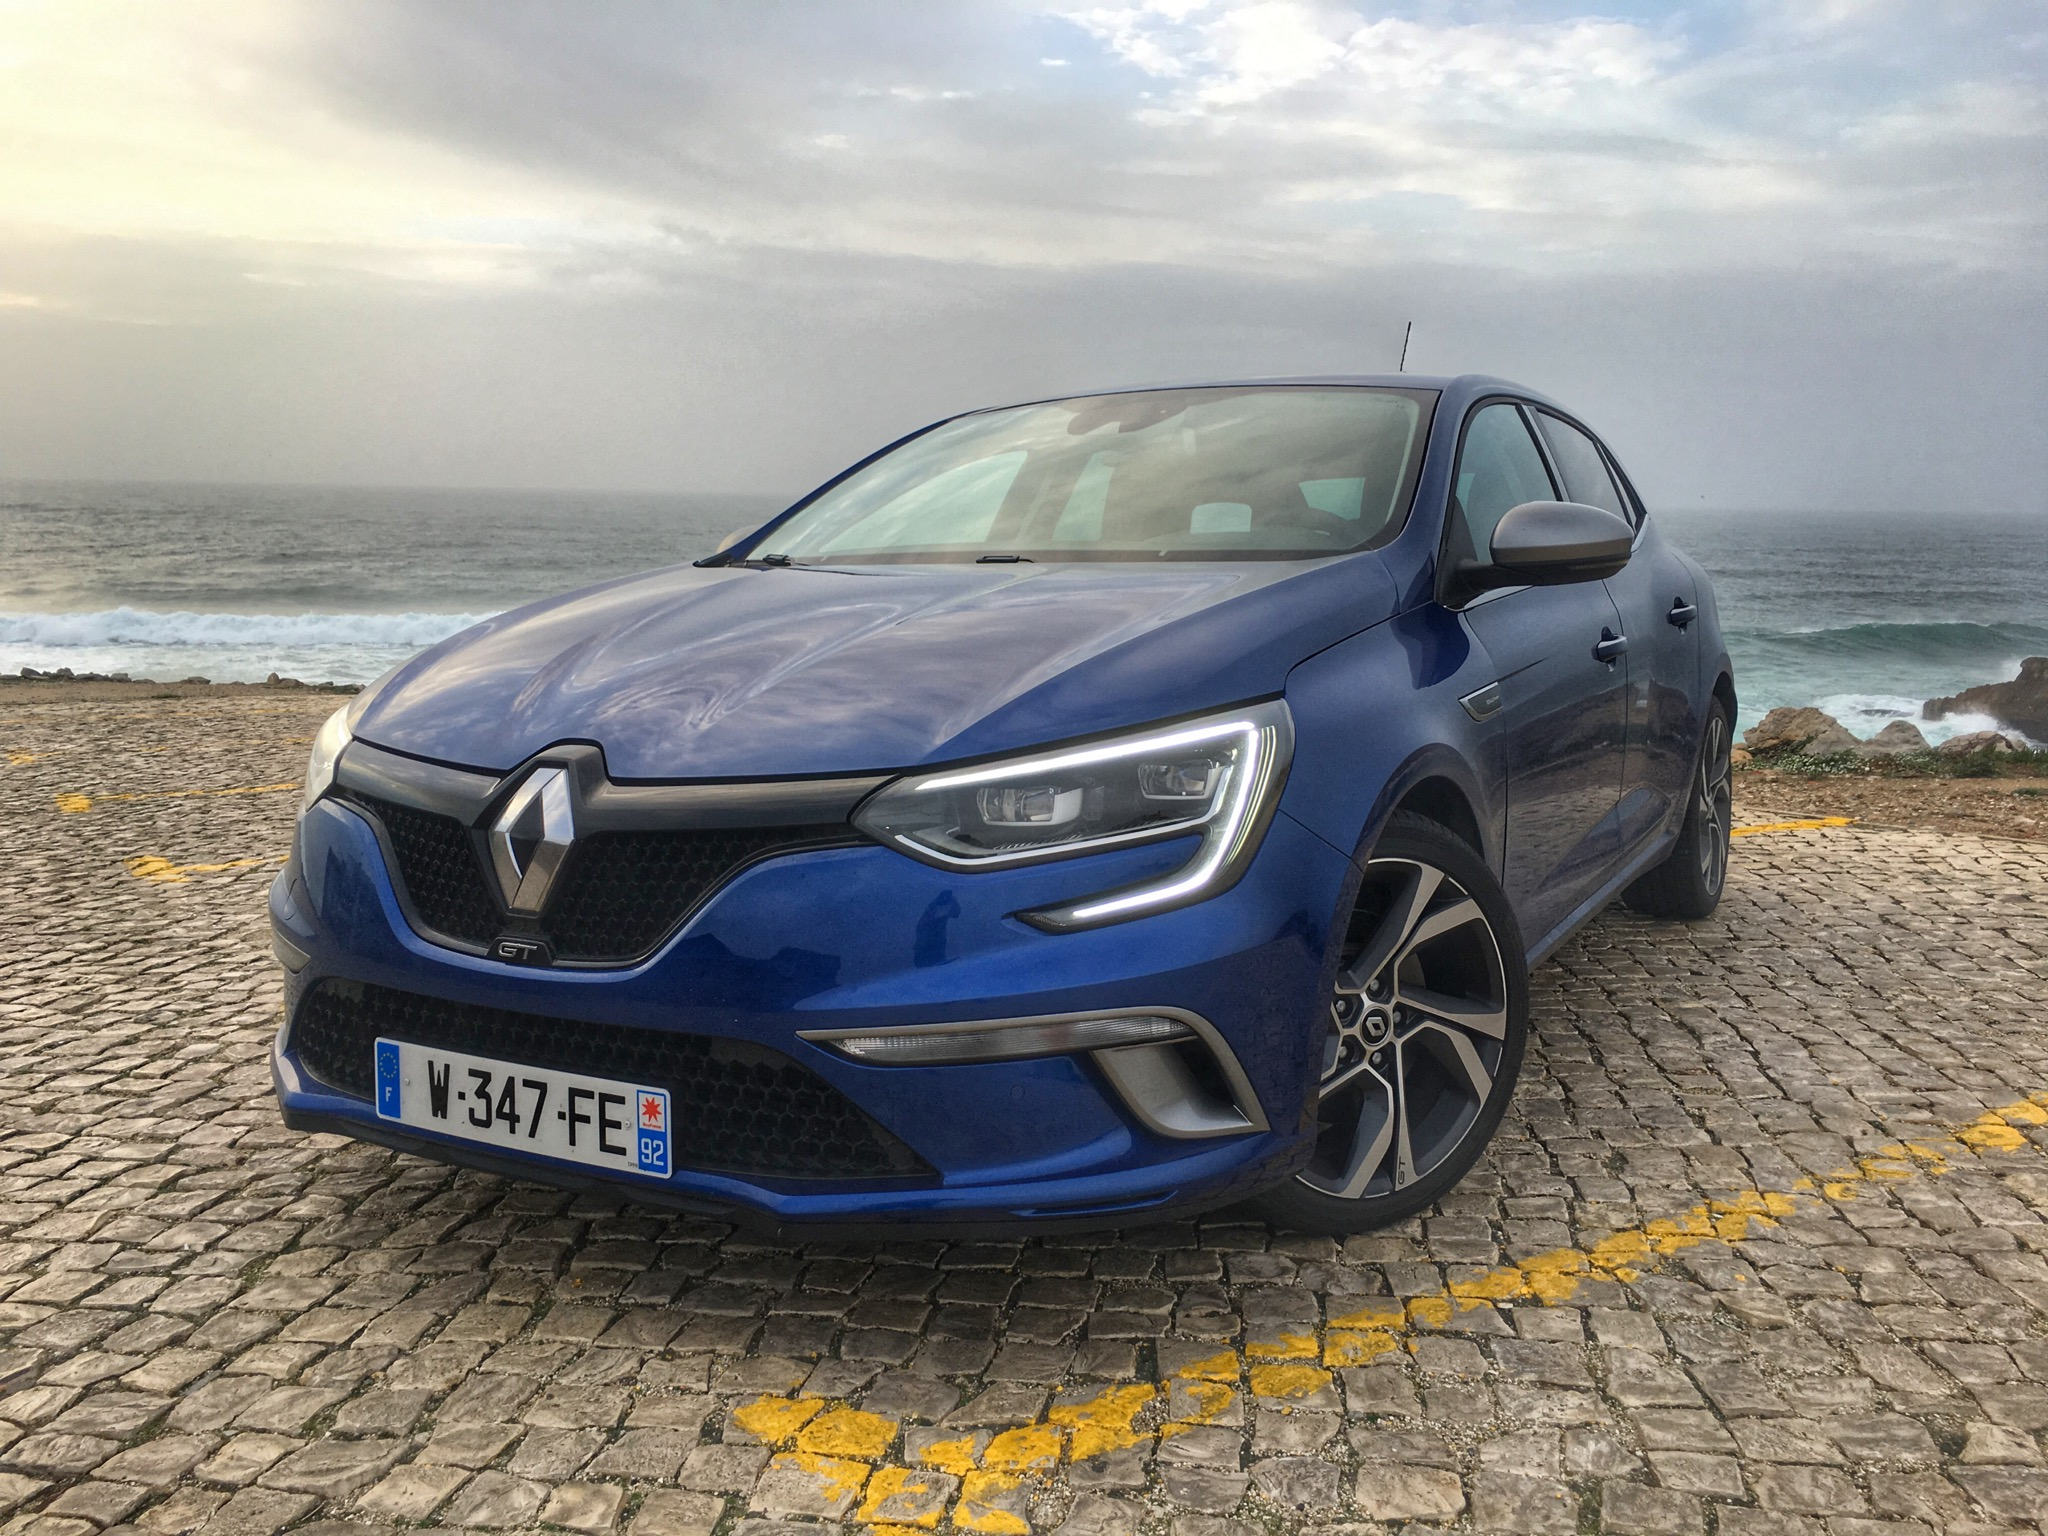 2016 Renault Megane Gt Front Profile (View 20 of 27)